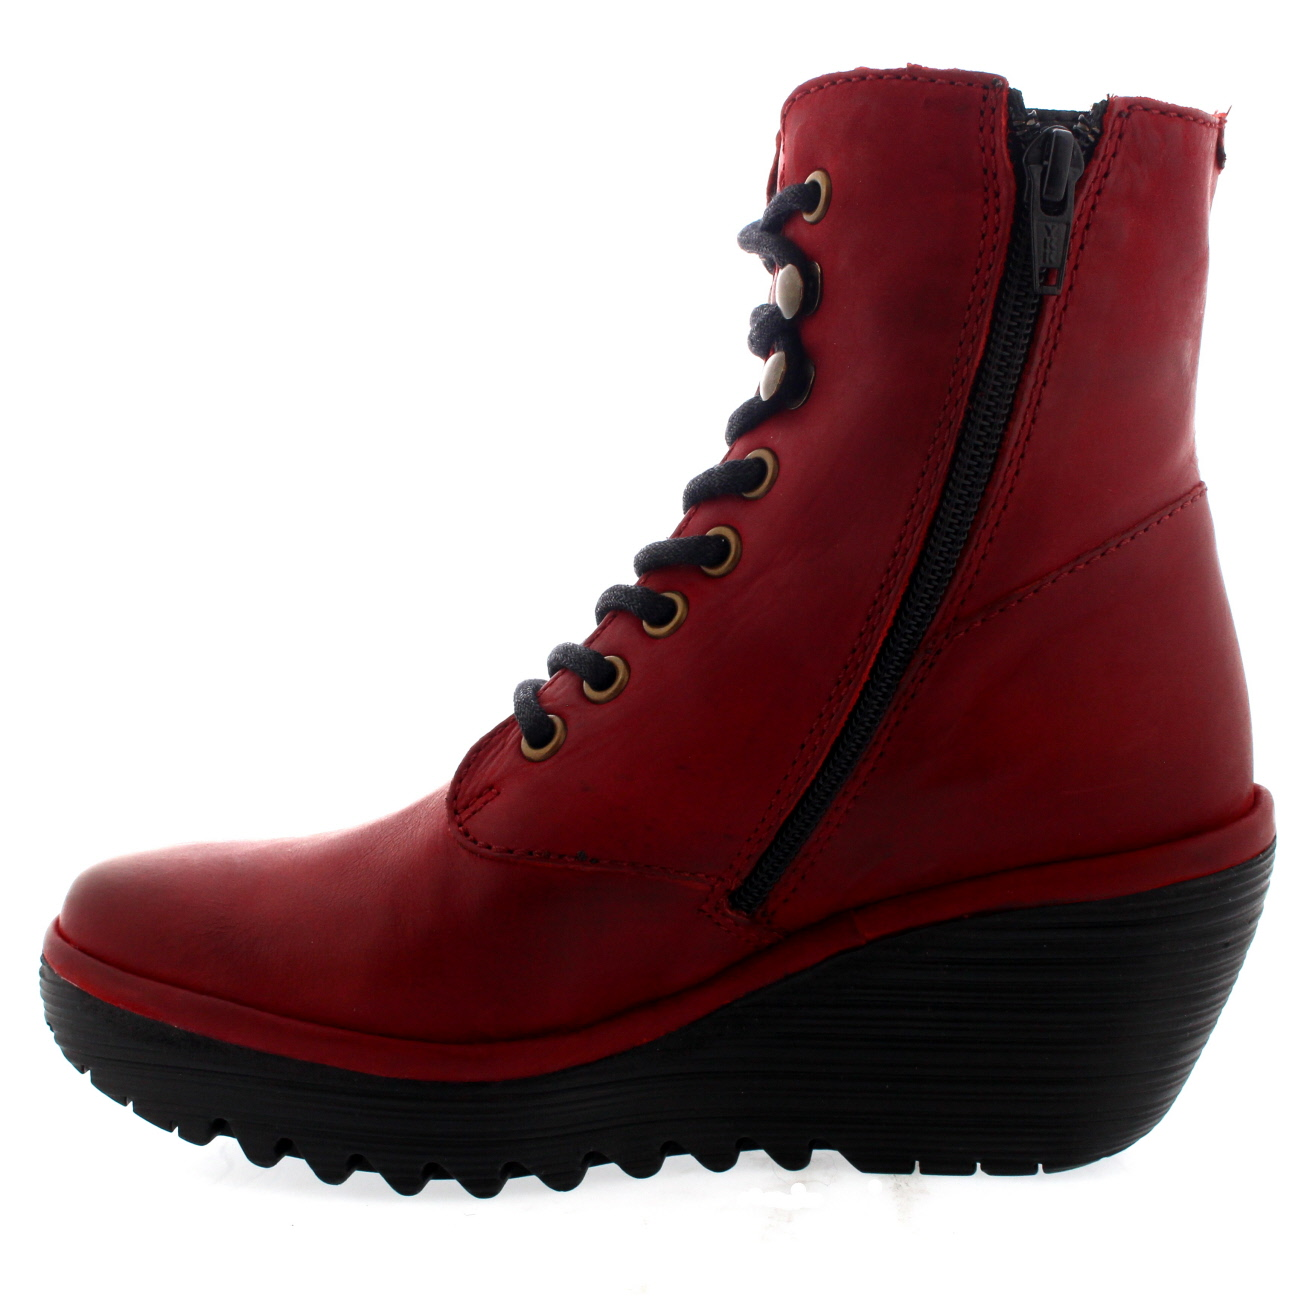 Womens Fly London Yarn Red Rug Leather Wedge Heel Ankle Boots UK Size